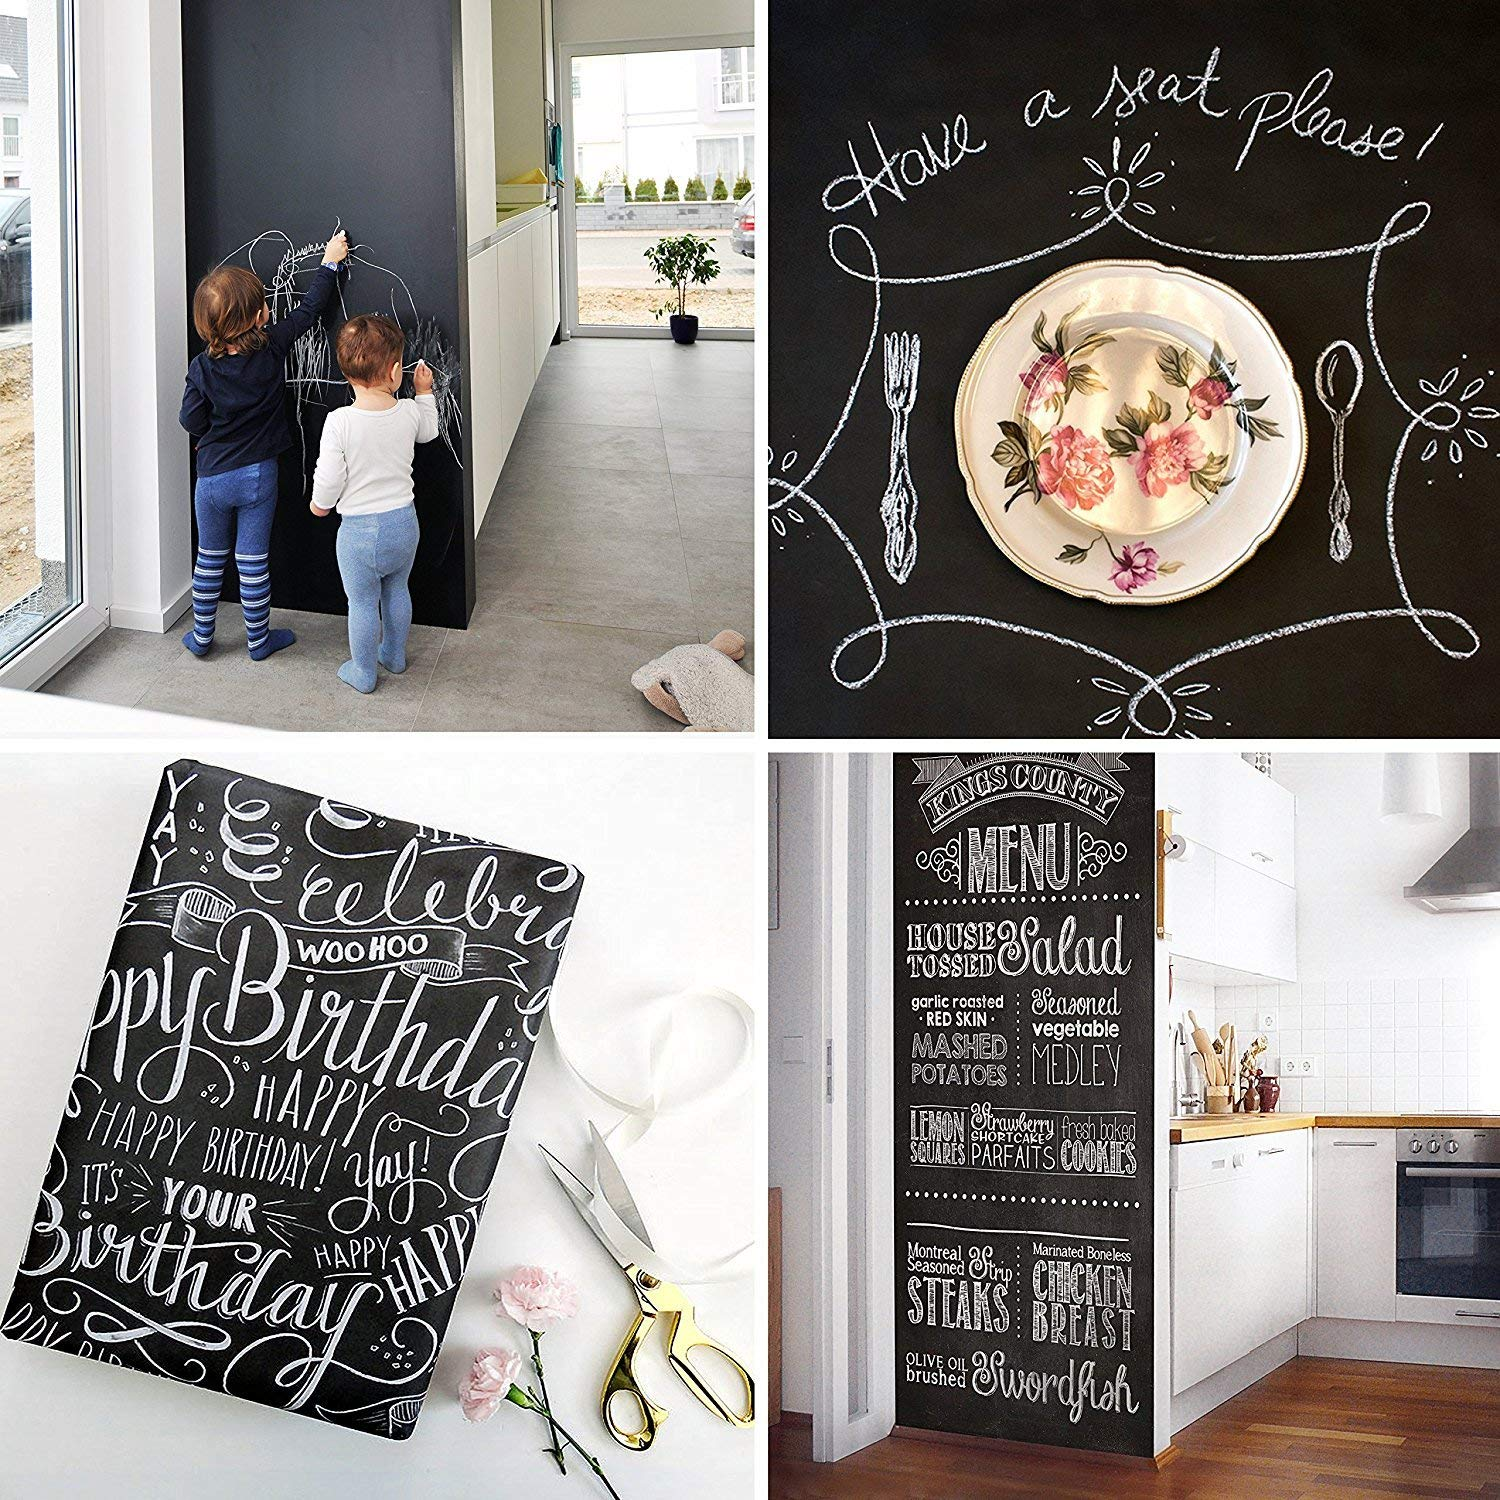 Extra Large Chalkboard Contact Paper PVC Wall Decal Poster (6.5 Feet) Blackboard Roll Adhesive Chalk Board Paint Alternative w